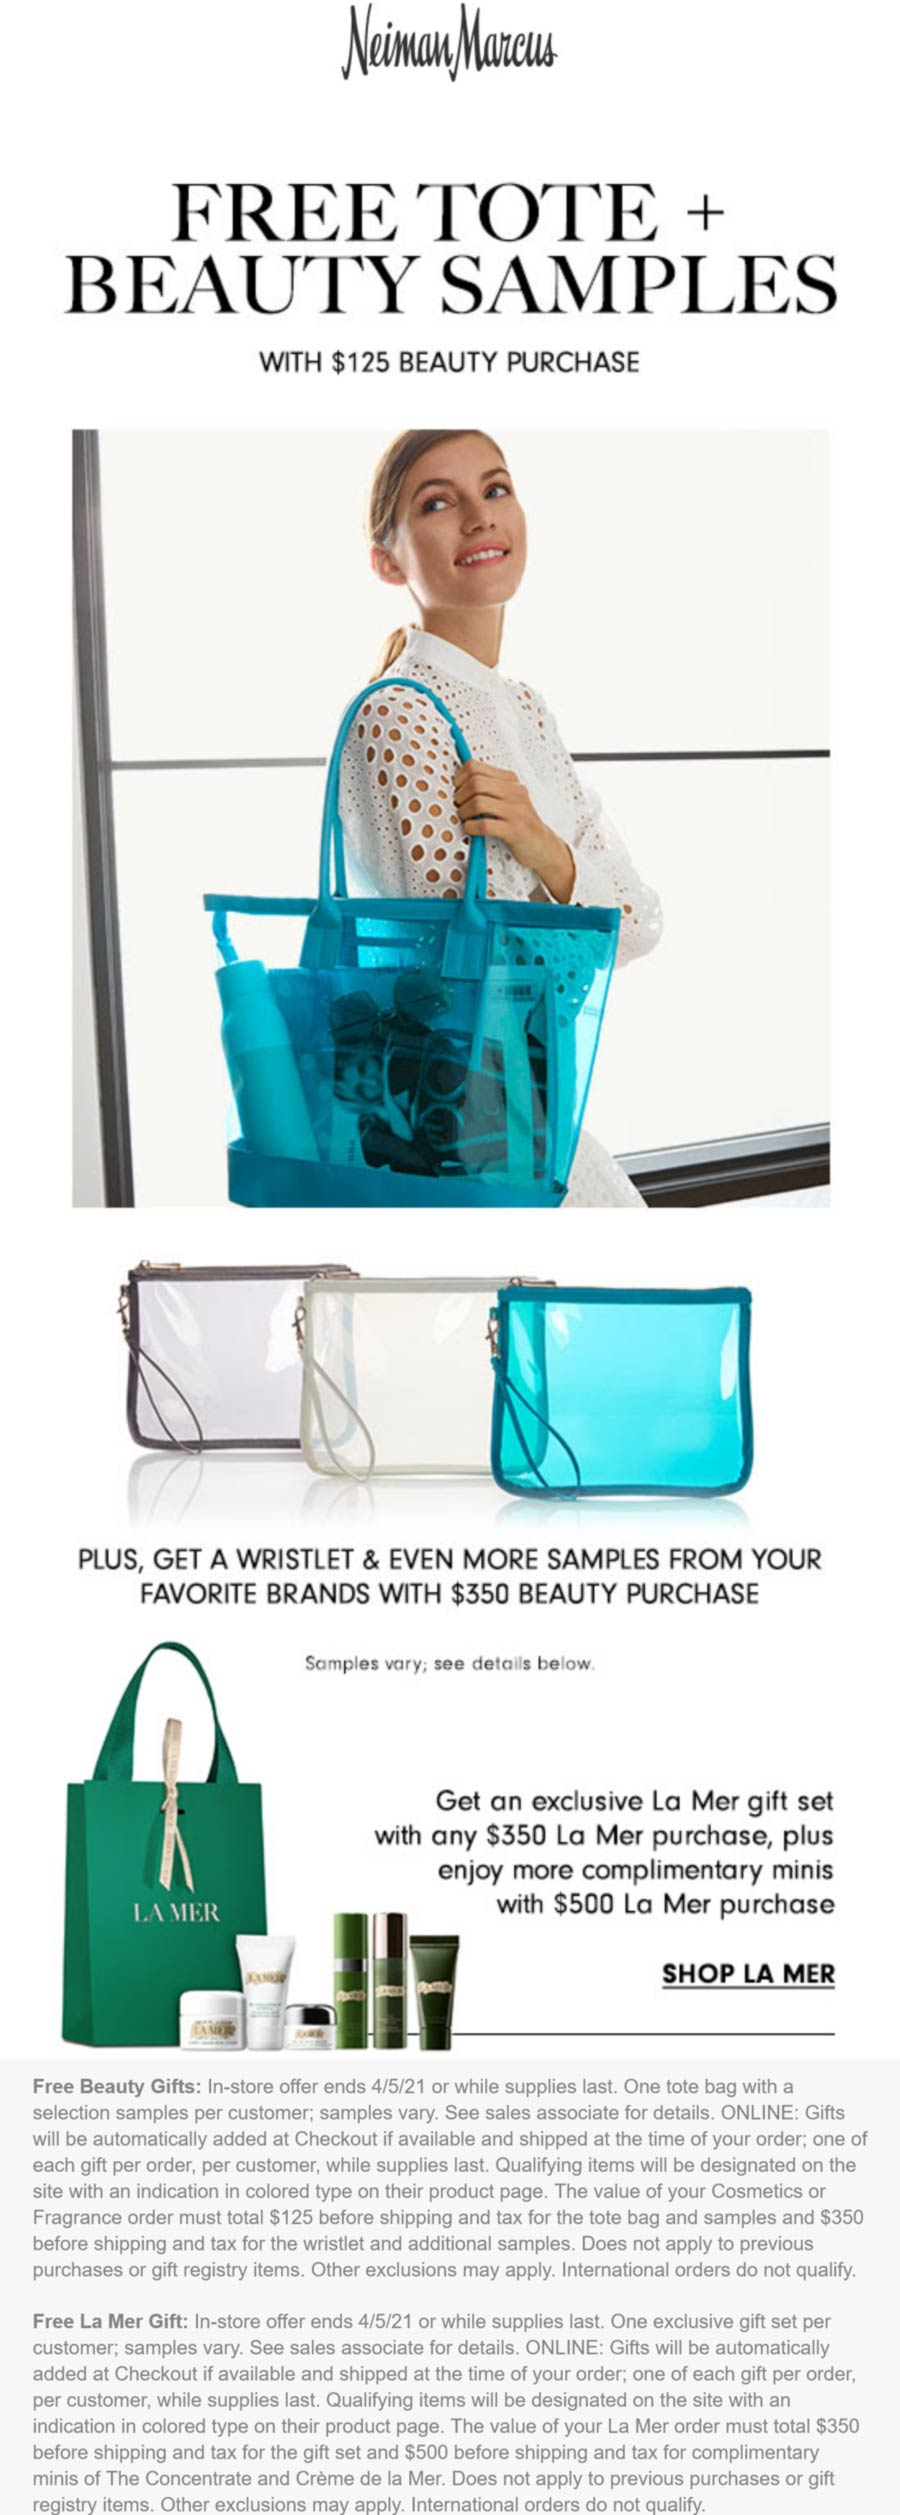 Neiman Marcus stores Coupon  Free tote & various beauty shwag with $125 spent at Neiman Marcus #neimanmarcus